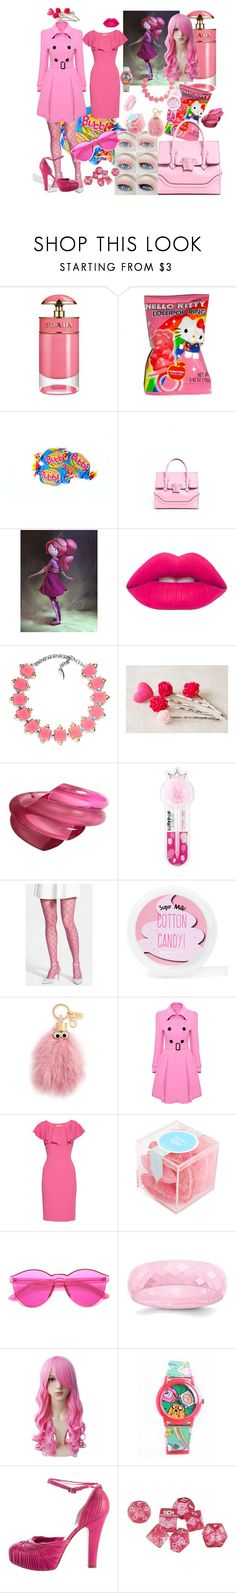 """Princess Bubblegum"" by missmoxxie ❤ liked on Polyvore featuring Prada, Hello Kitty, Versace, Lime Crime, Judith Hendler, International Arrivals, Younique, OROBLU, Sugar Milk Co and Sophie Hulme"